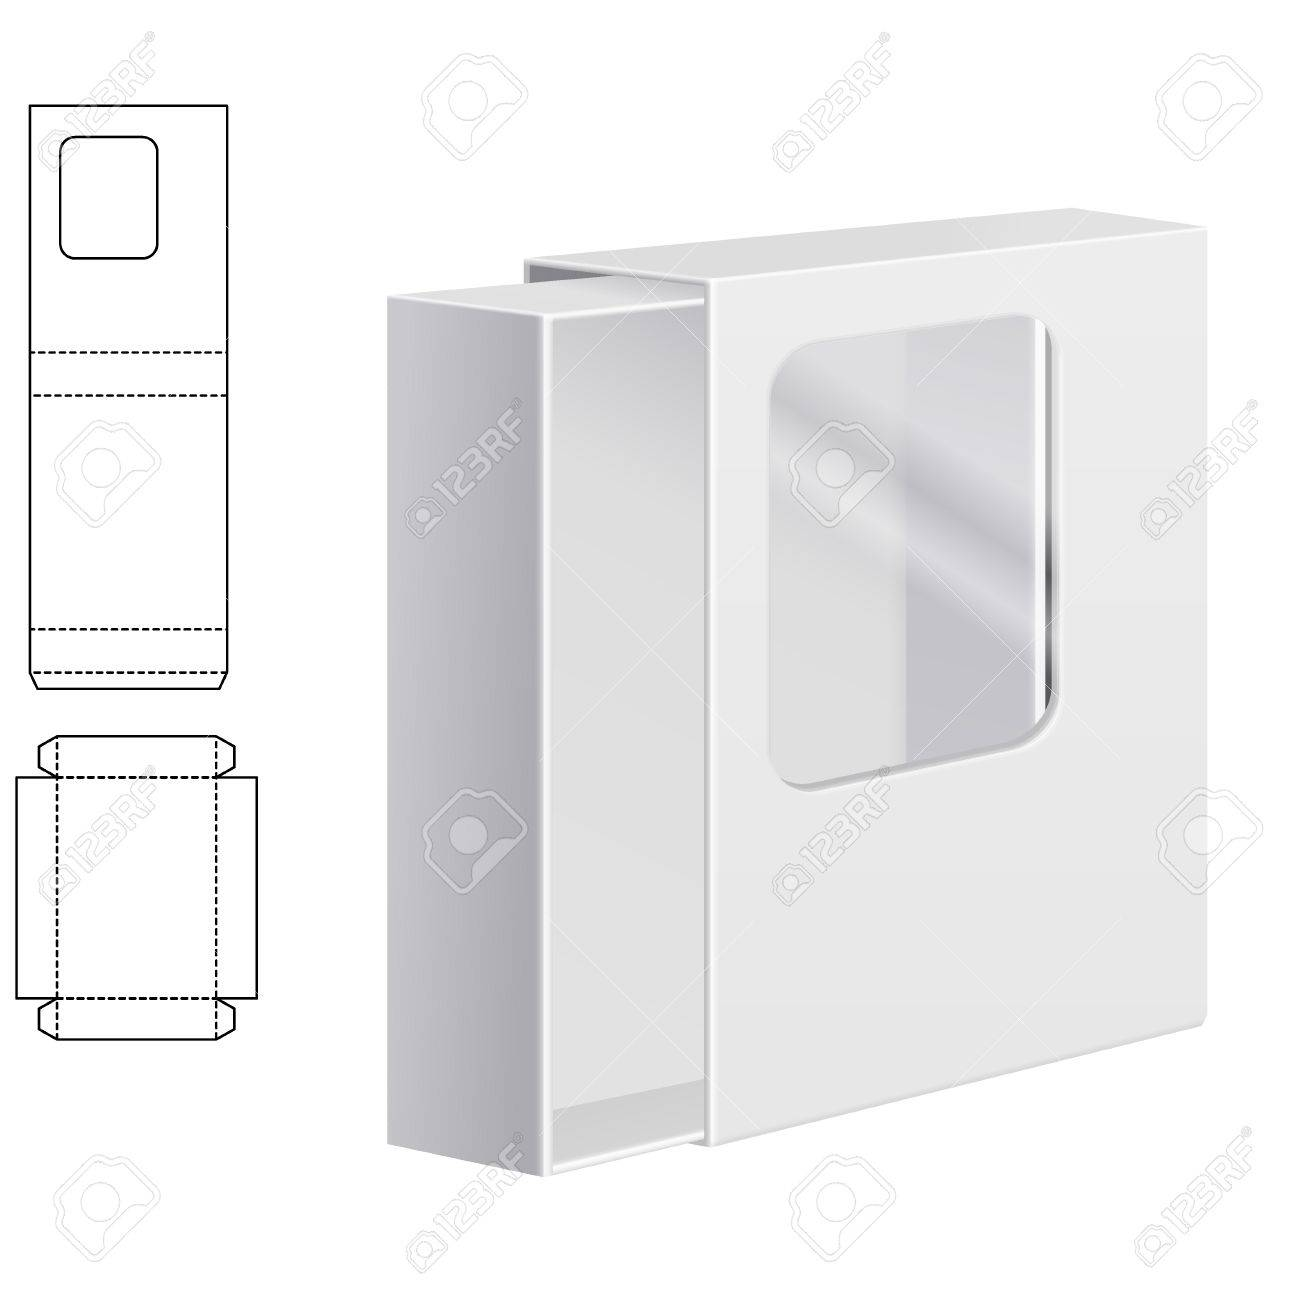 Vector Illustration of Clear dieline Folding Carton Box with window for Design Website Background  sc 1 st  123RF Stock Photos : folding box design - Aboutintivar.Com